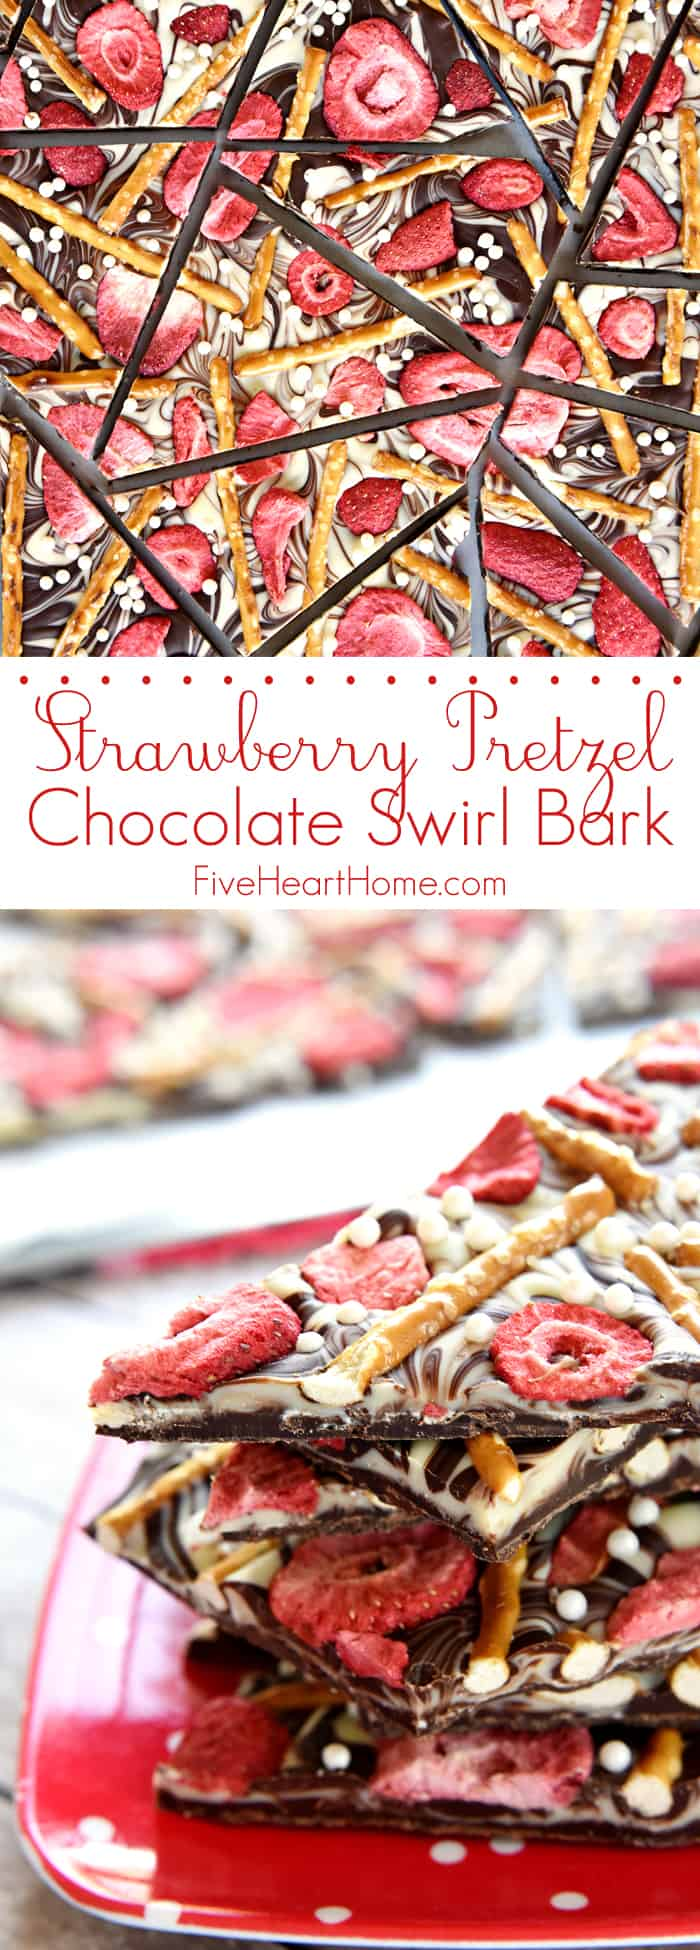 Strawberry Pretzel Chocolate Swirl Bark Collage with Text Overlay